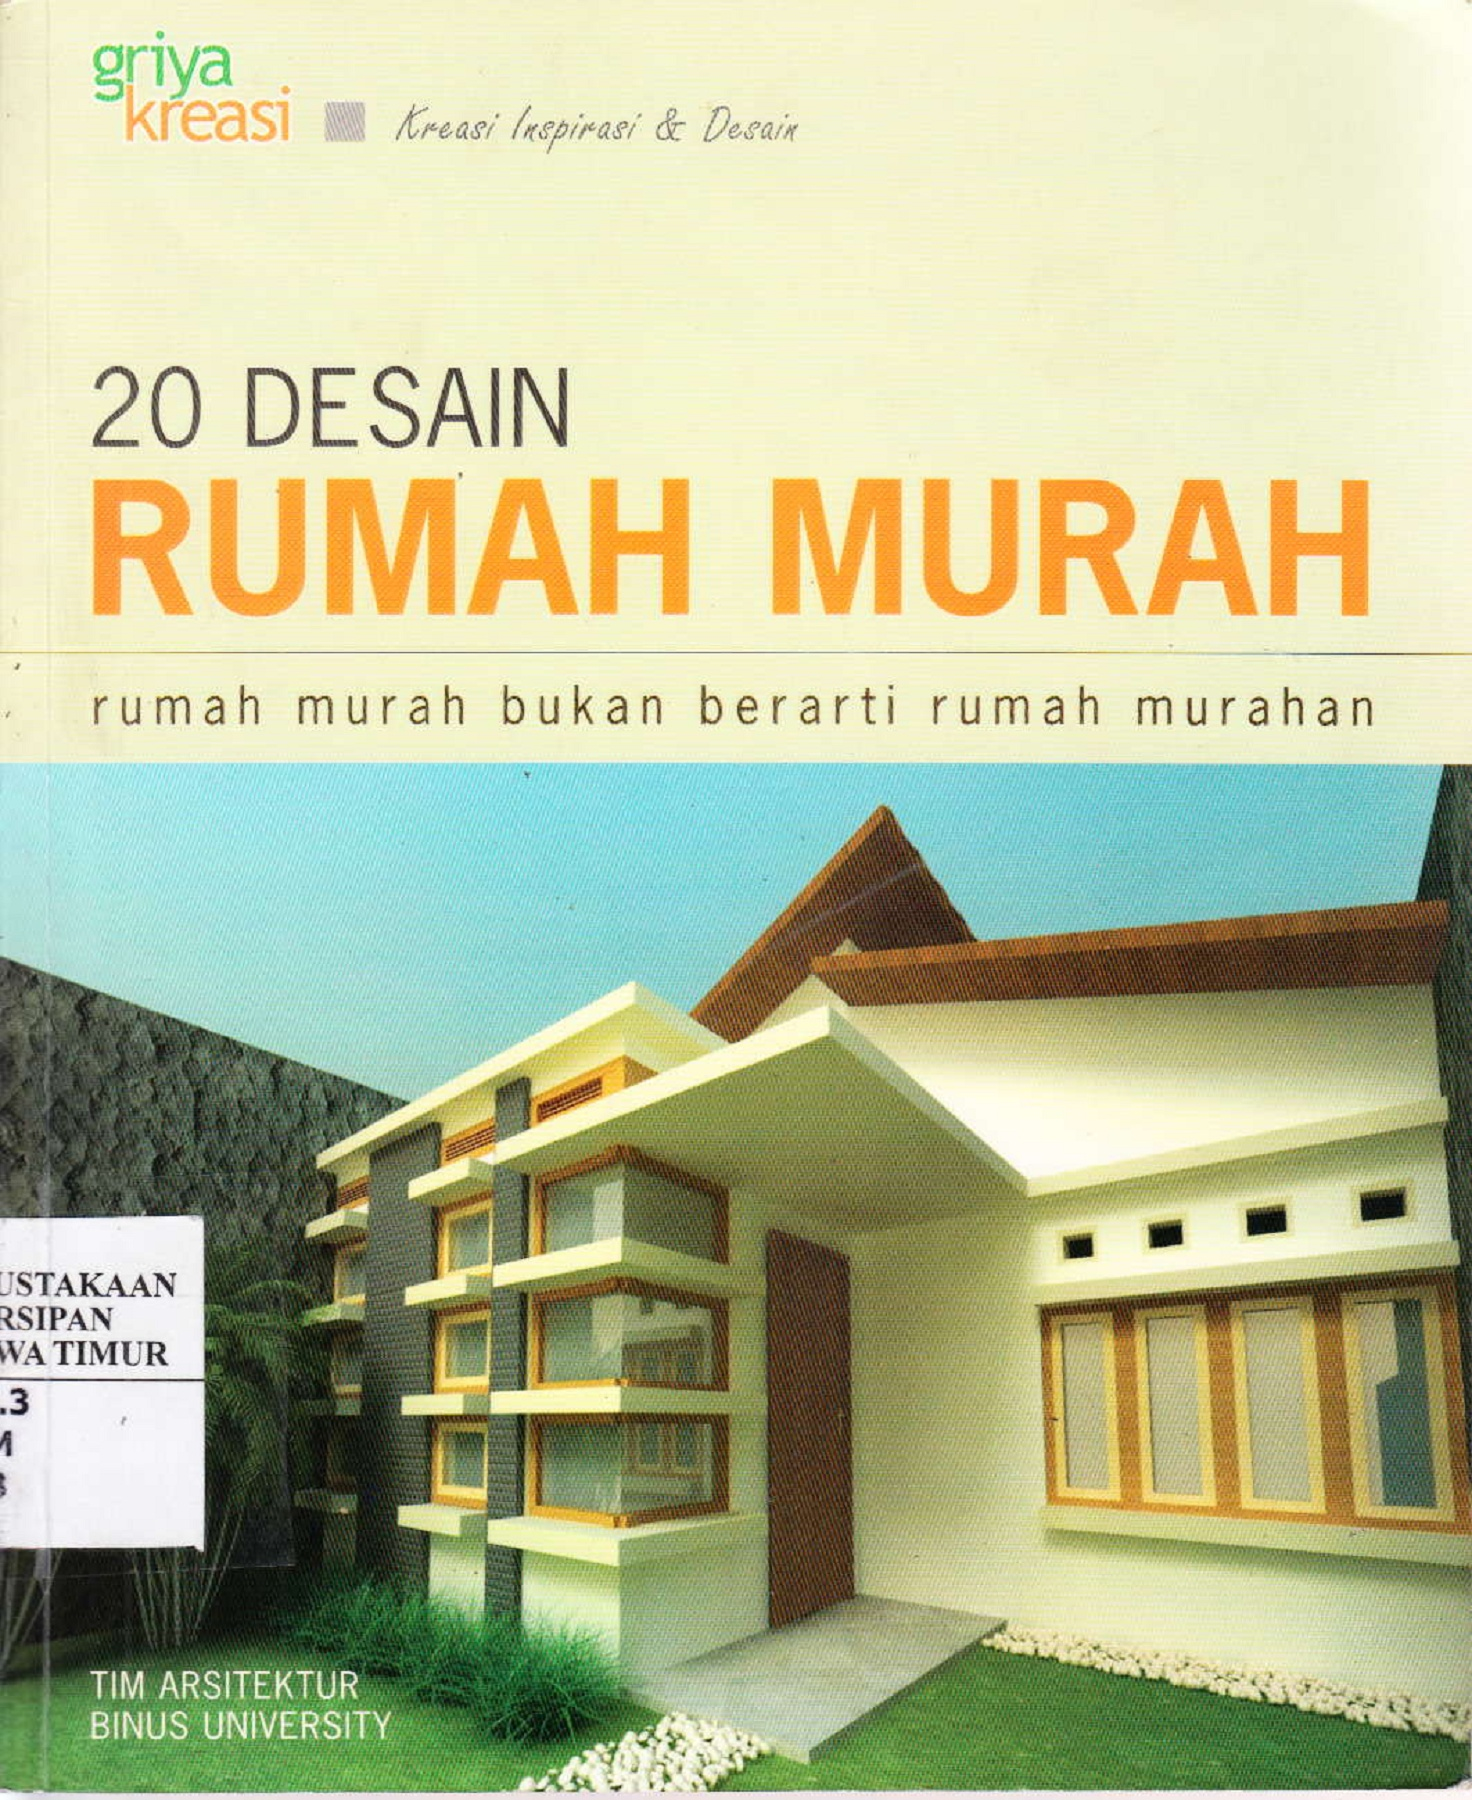 20 Desain Rumah Murah Pages 1 50 Text Version